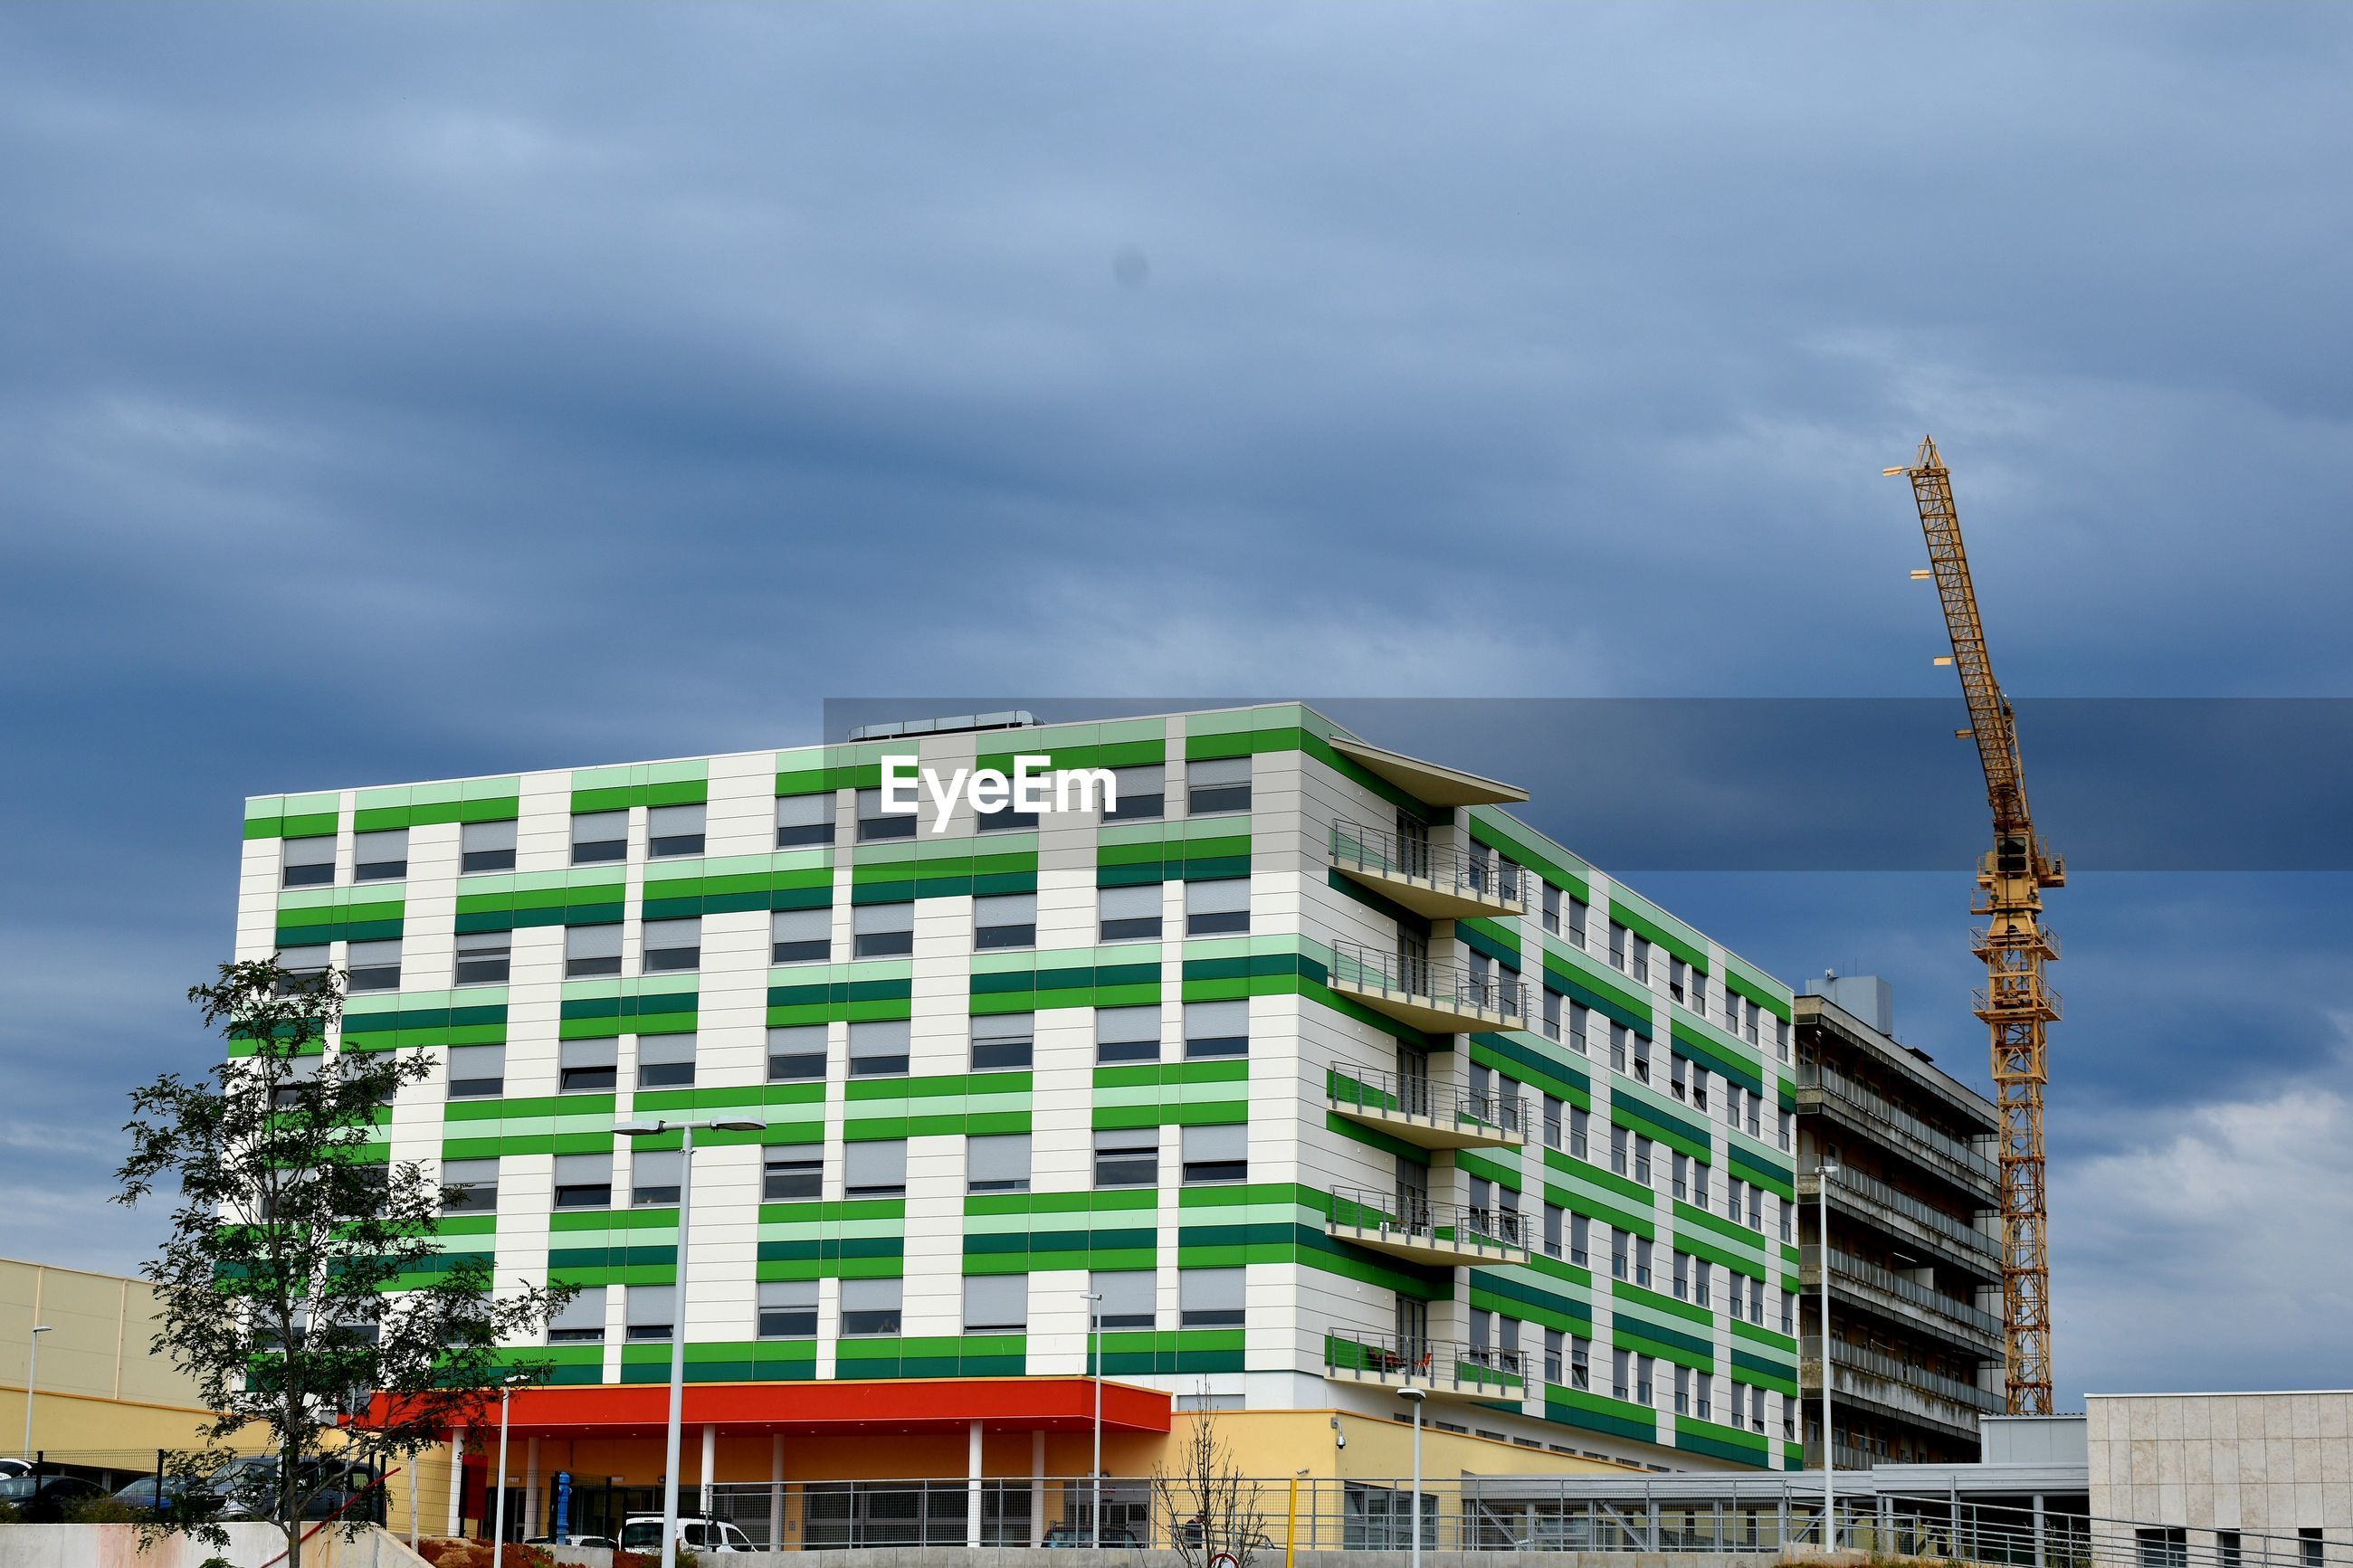 LOW ANGLE VIEW OF BUILDING AT CONSTRUCTION SITE AGAINST SKY